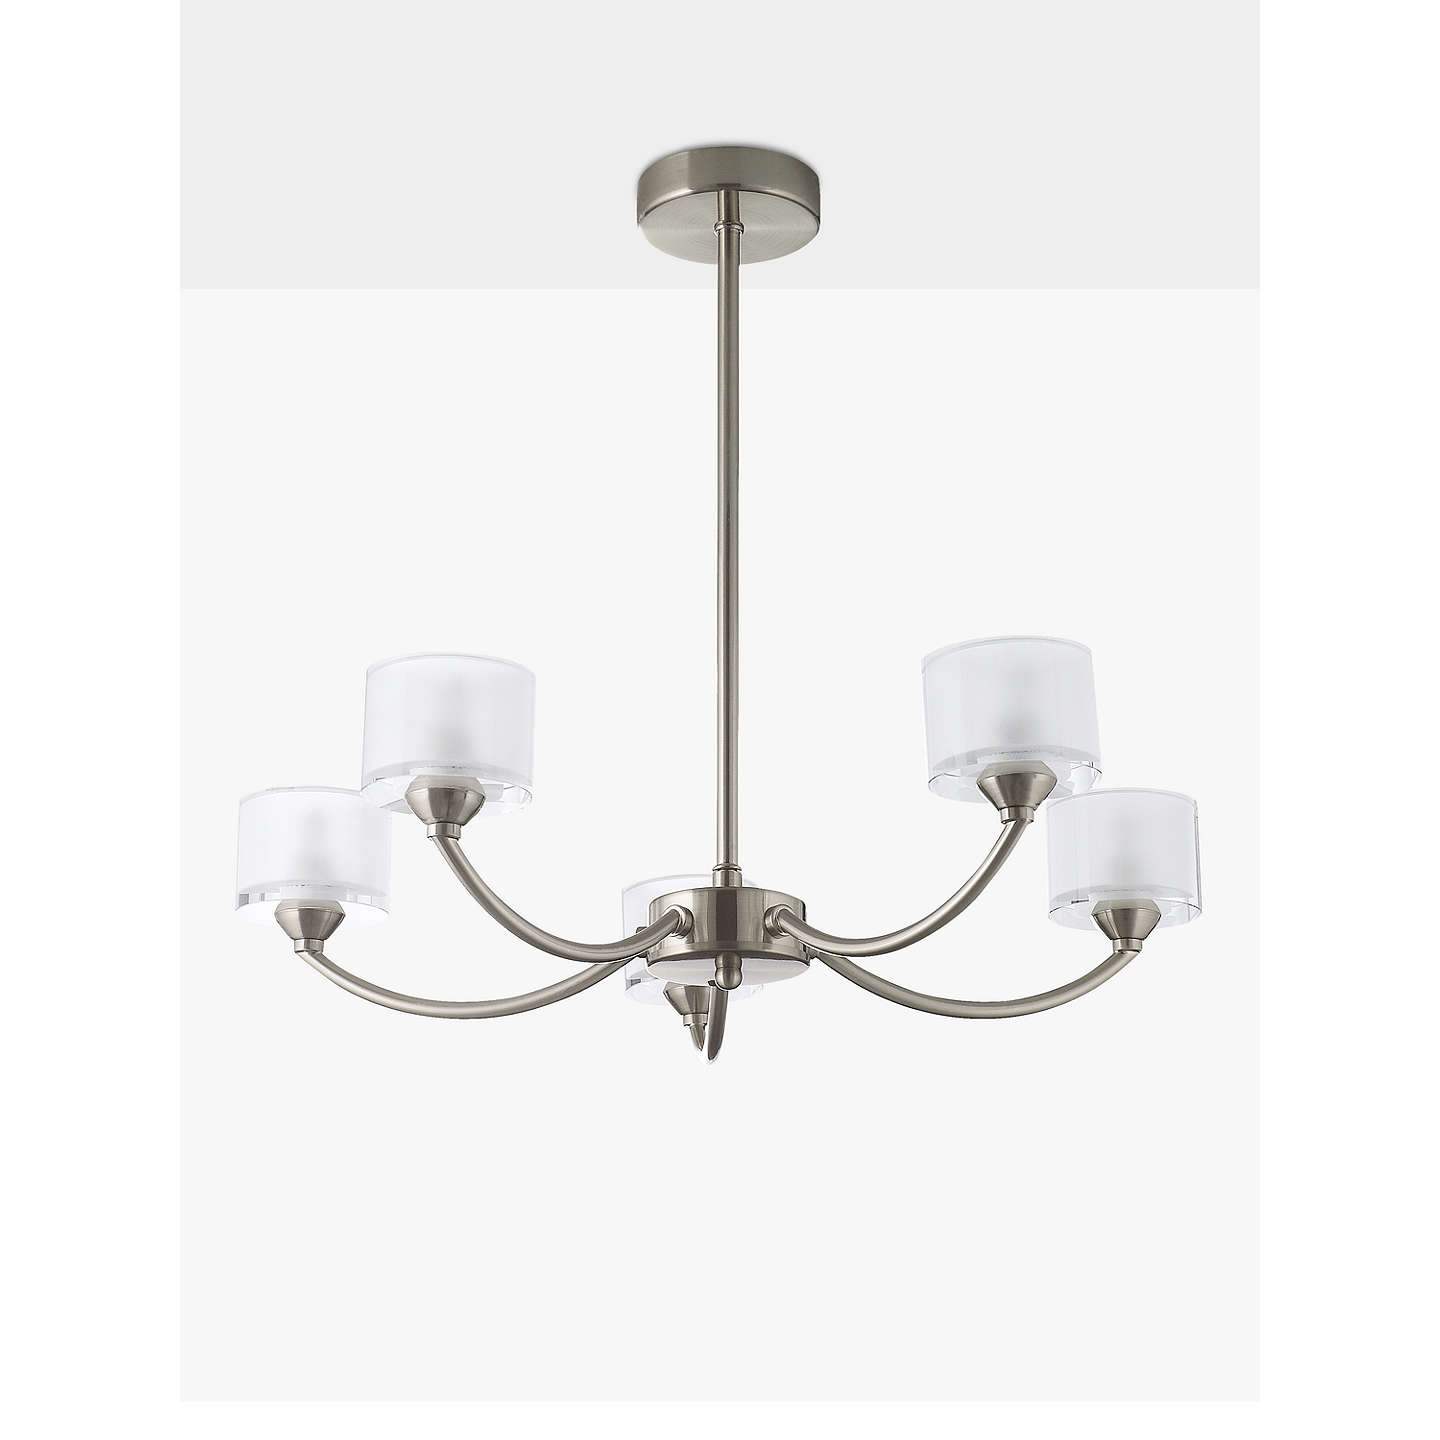 John lewis paige ceiling light 5 arm at john lewis buyjohn lewis paige ceiling light 5 arm satin nickel online at johnlewis aloadofball Choice Image